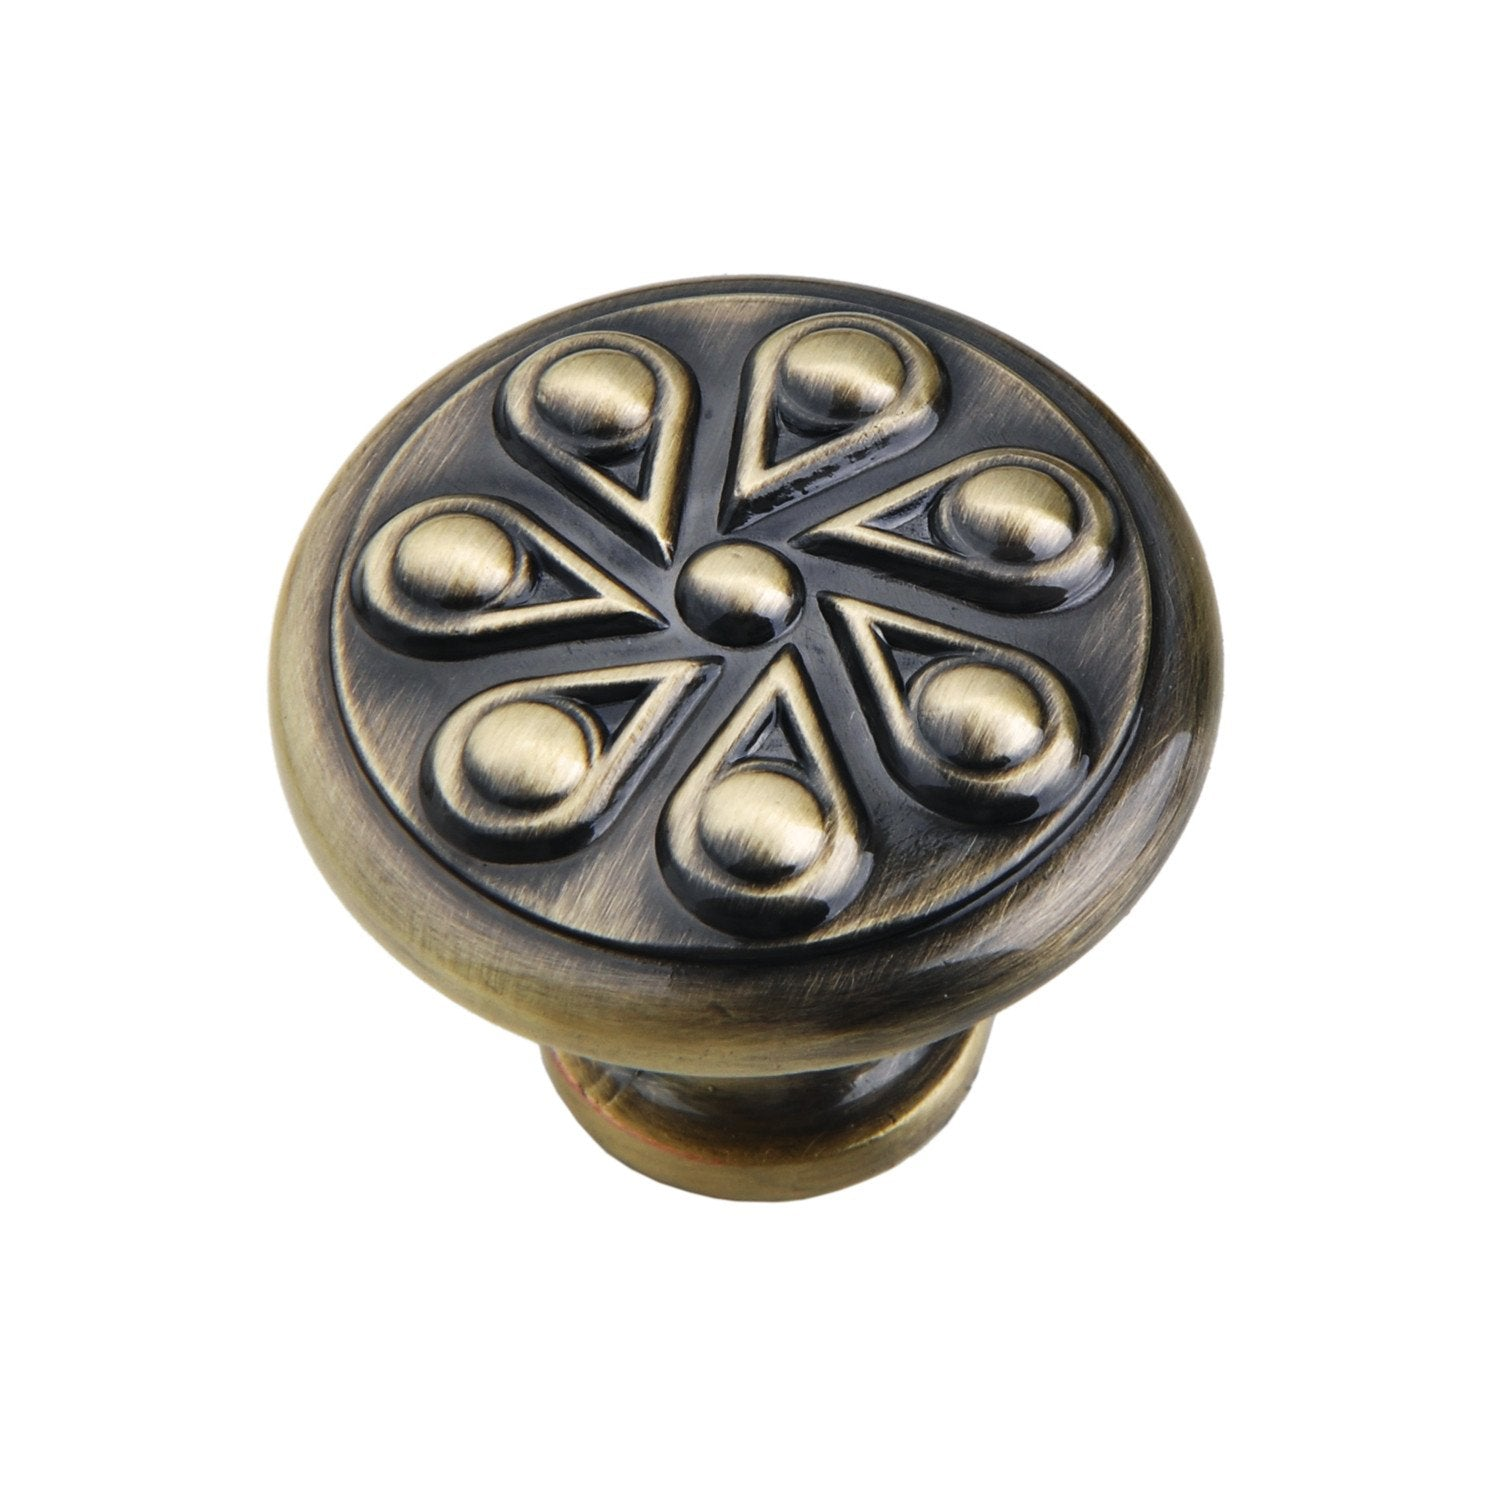 Ciel Antique Brass Cabinet Knob - Loft97 - 1